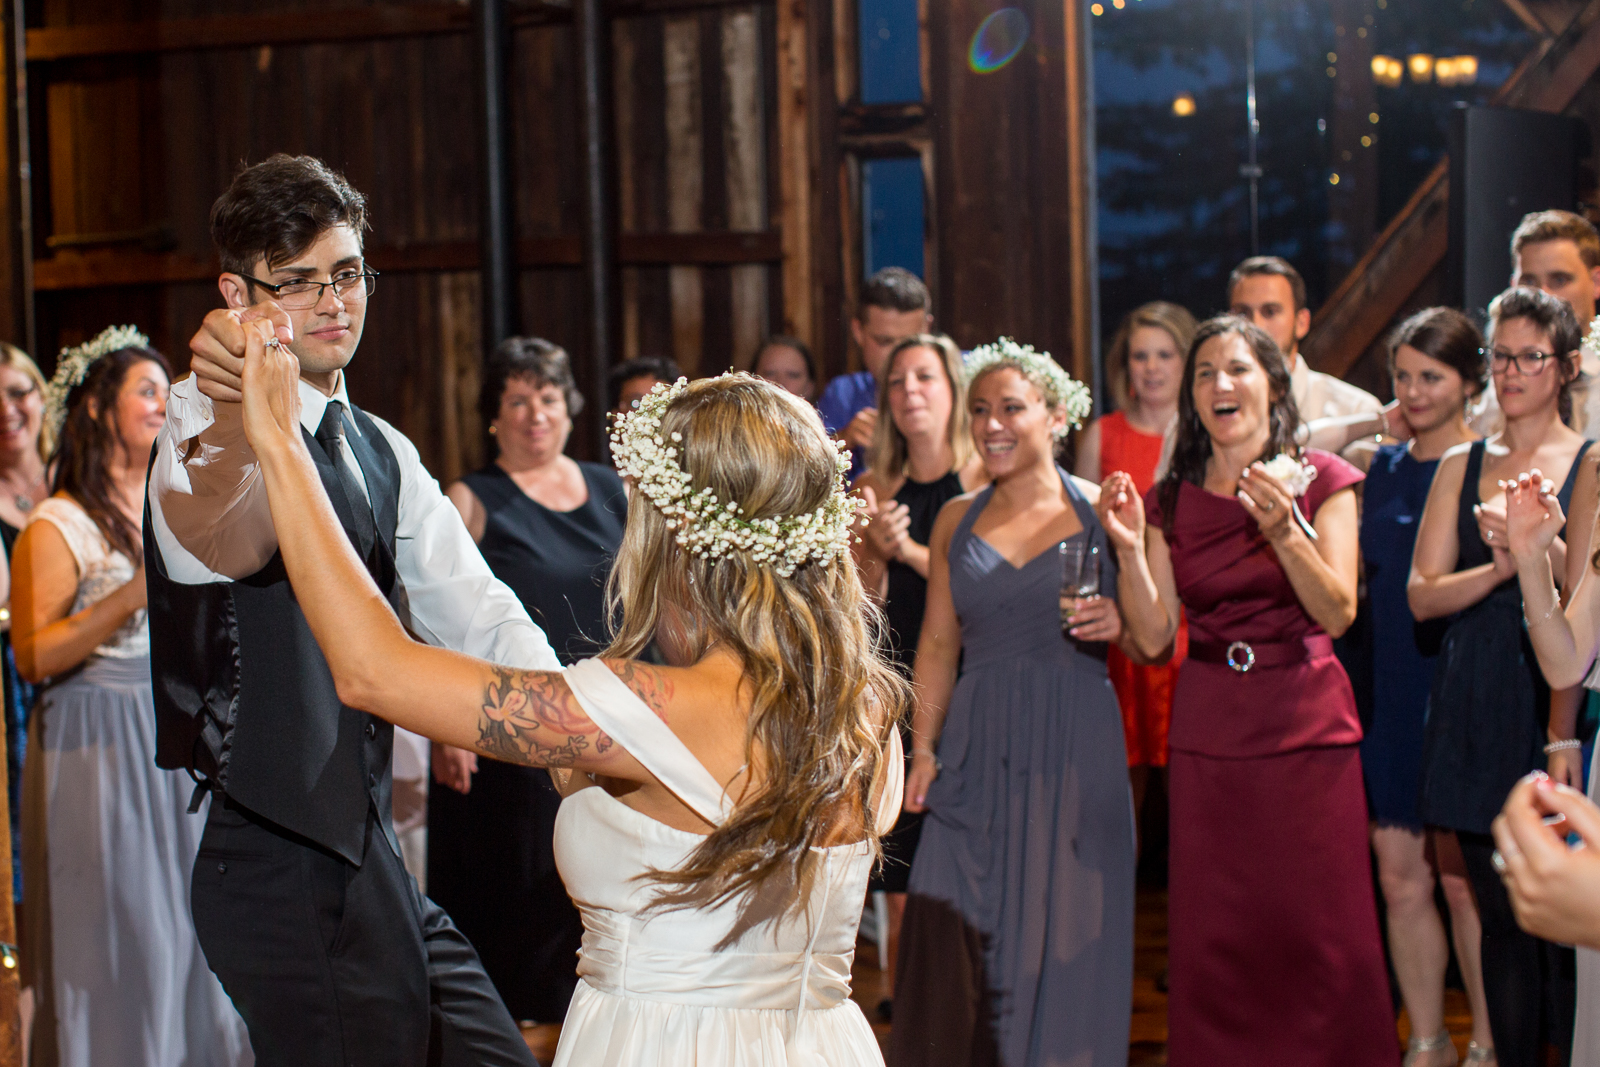 Four_Wings_Photography_Wedding_Red_Barn_at_Hampshire_College-50.jpg